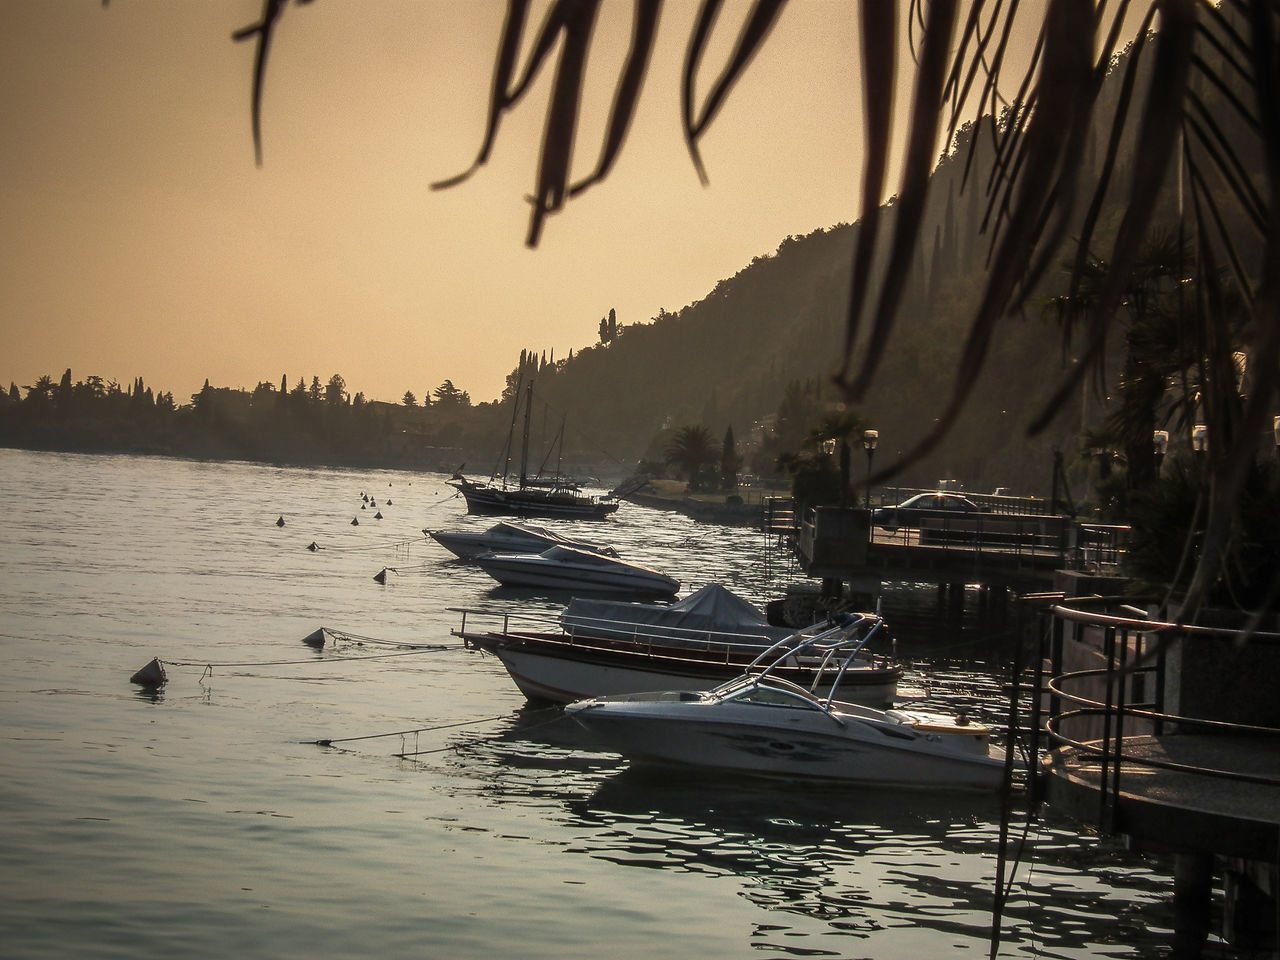 Abend Abendstimmung Day Evening Evening Light Evening Sky Italia Italien Italy Italy❤️ Italy🇮🇹 Lake Mode Of Transport Nature Nautical Vessel No People Outdoors Reflection Sera Sky Transportation Tree Water Waterfront Yachting